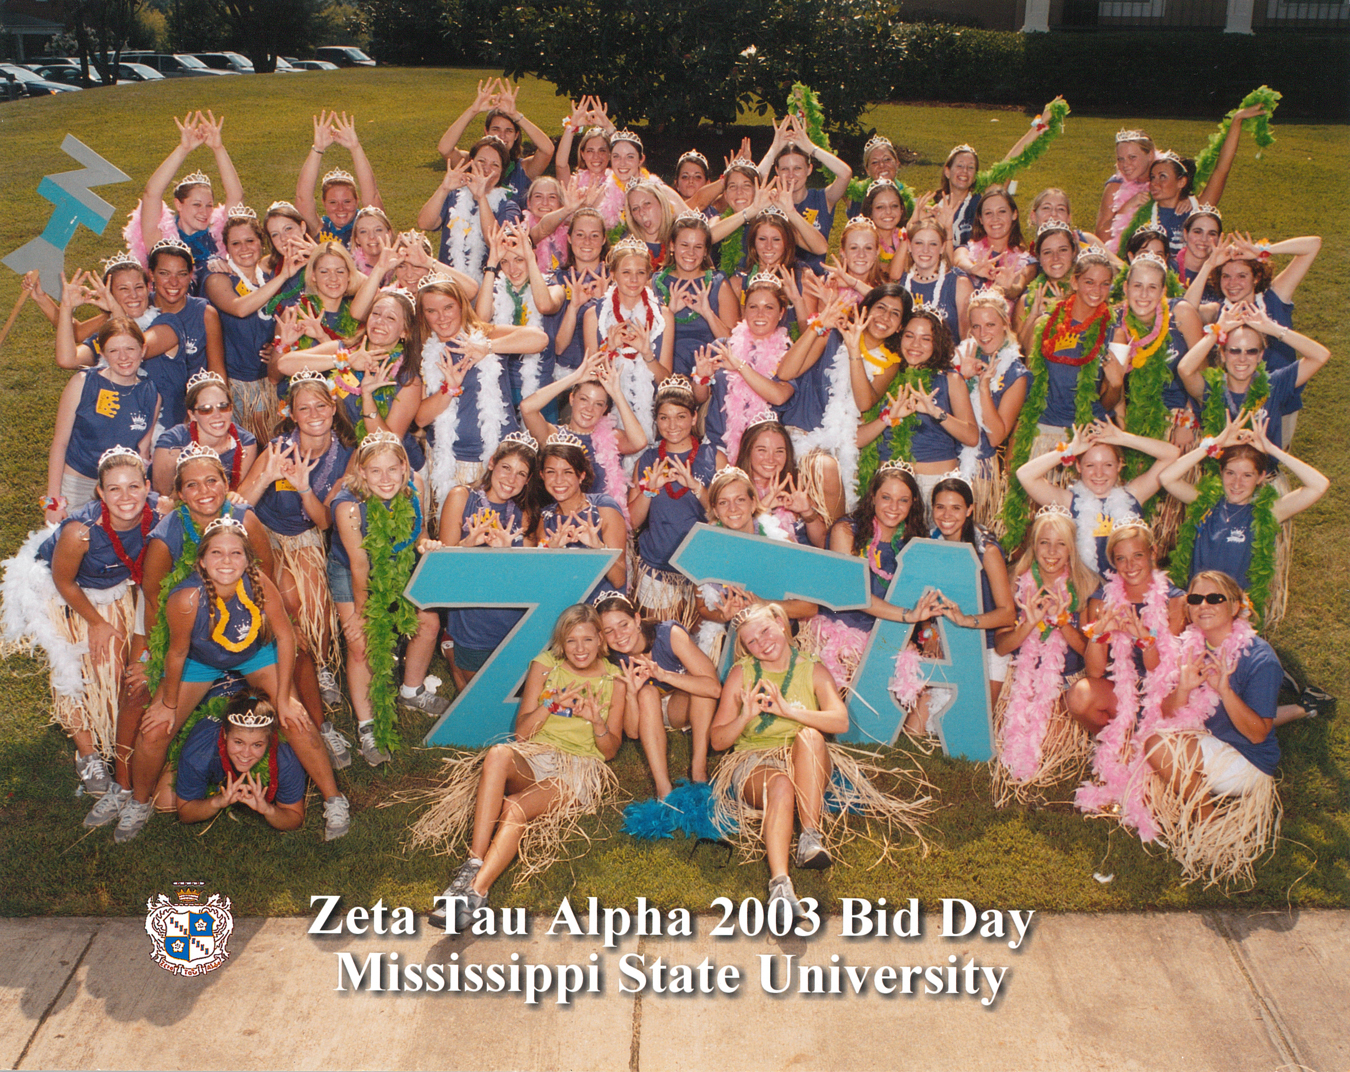 03-zta-mississippi-state-bid-day-pledge-class-group-photo-2003-lindsey-archer